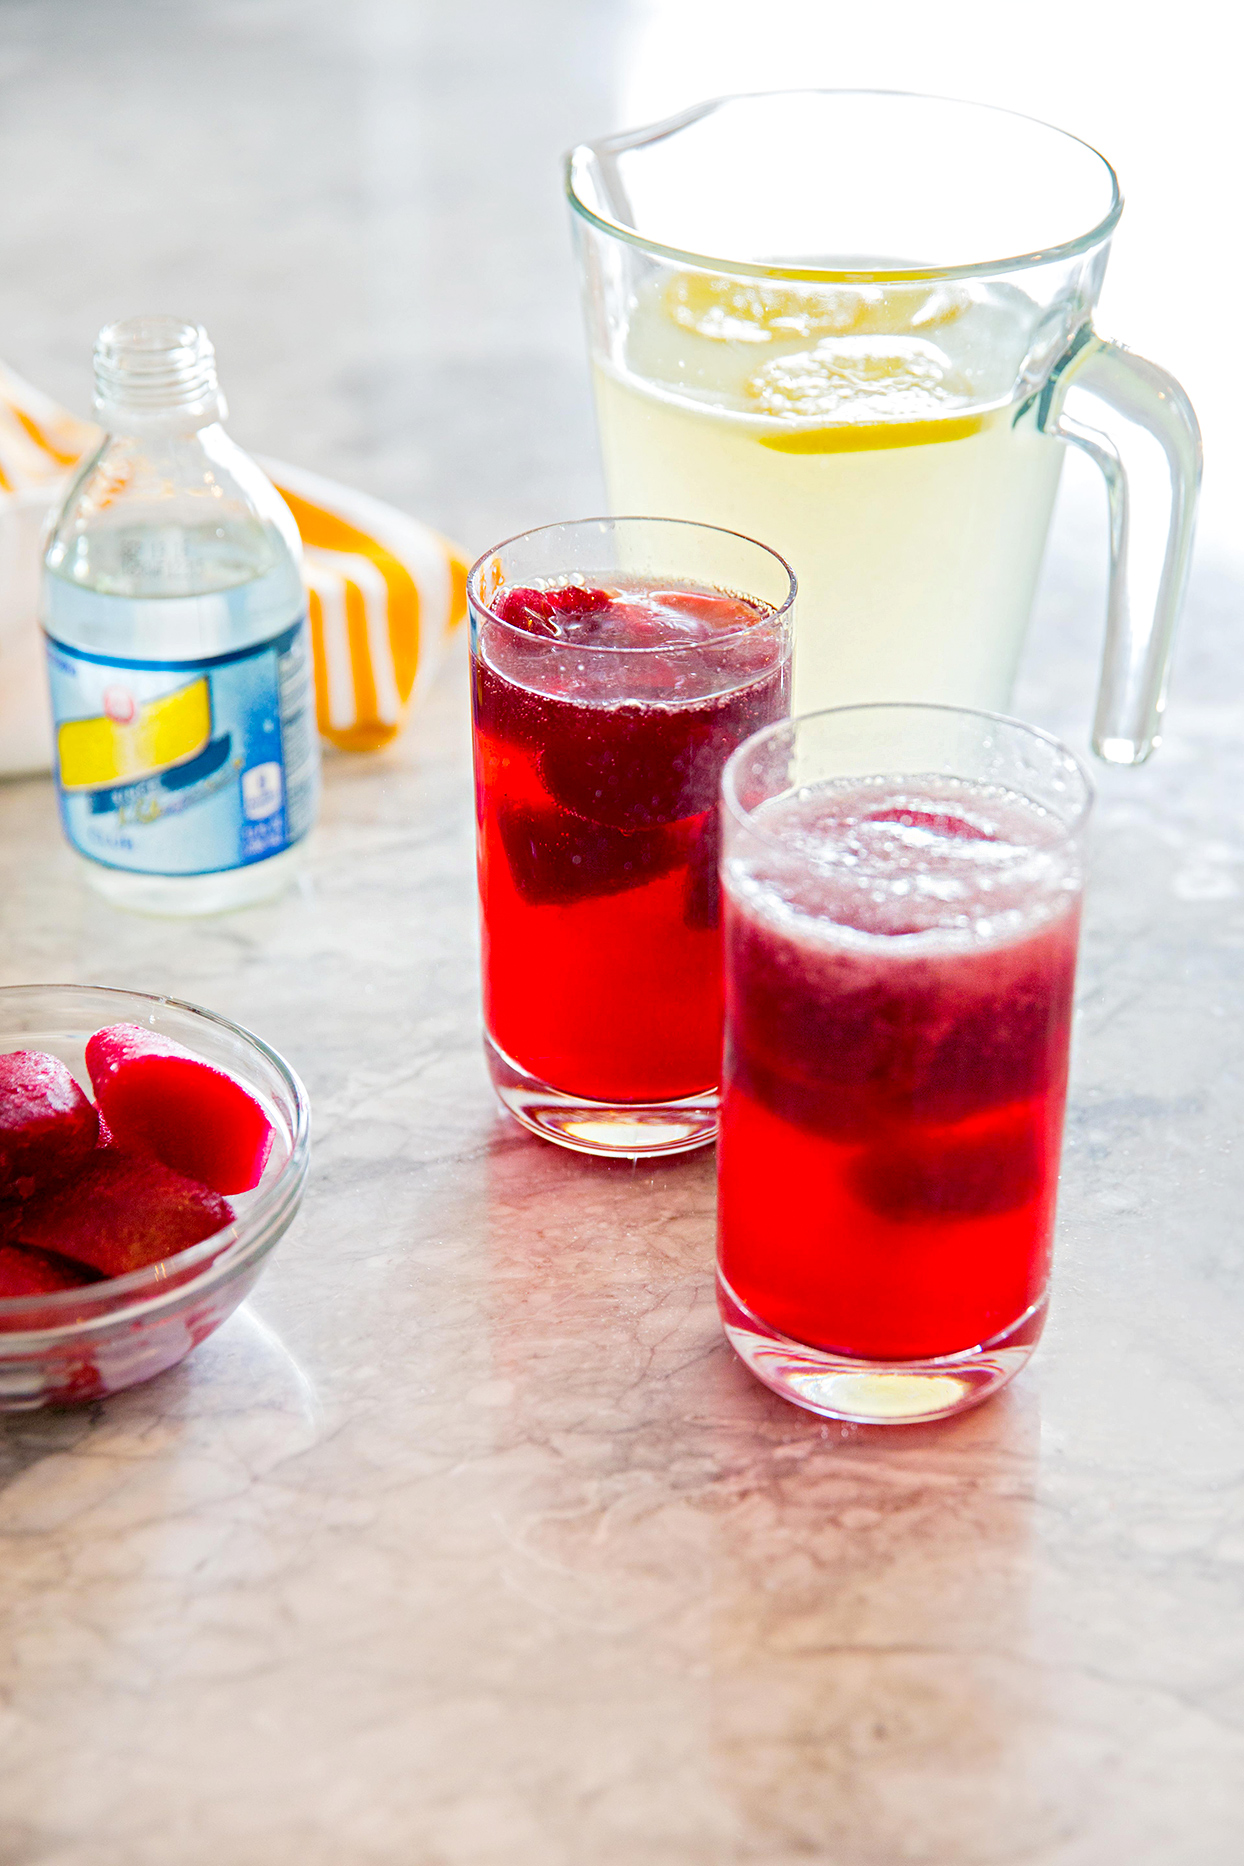 Two glasses and pitcher filled with beverages